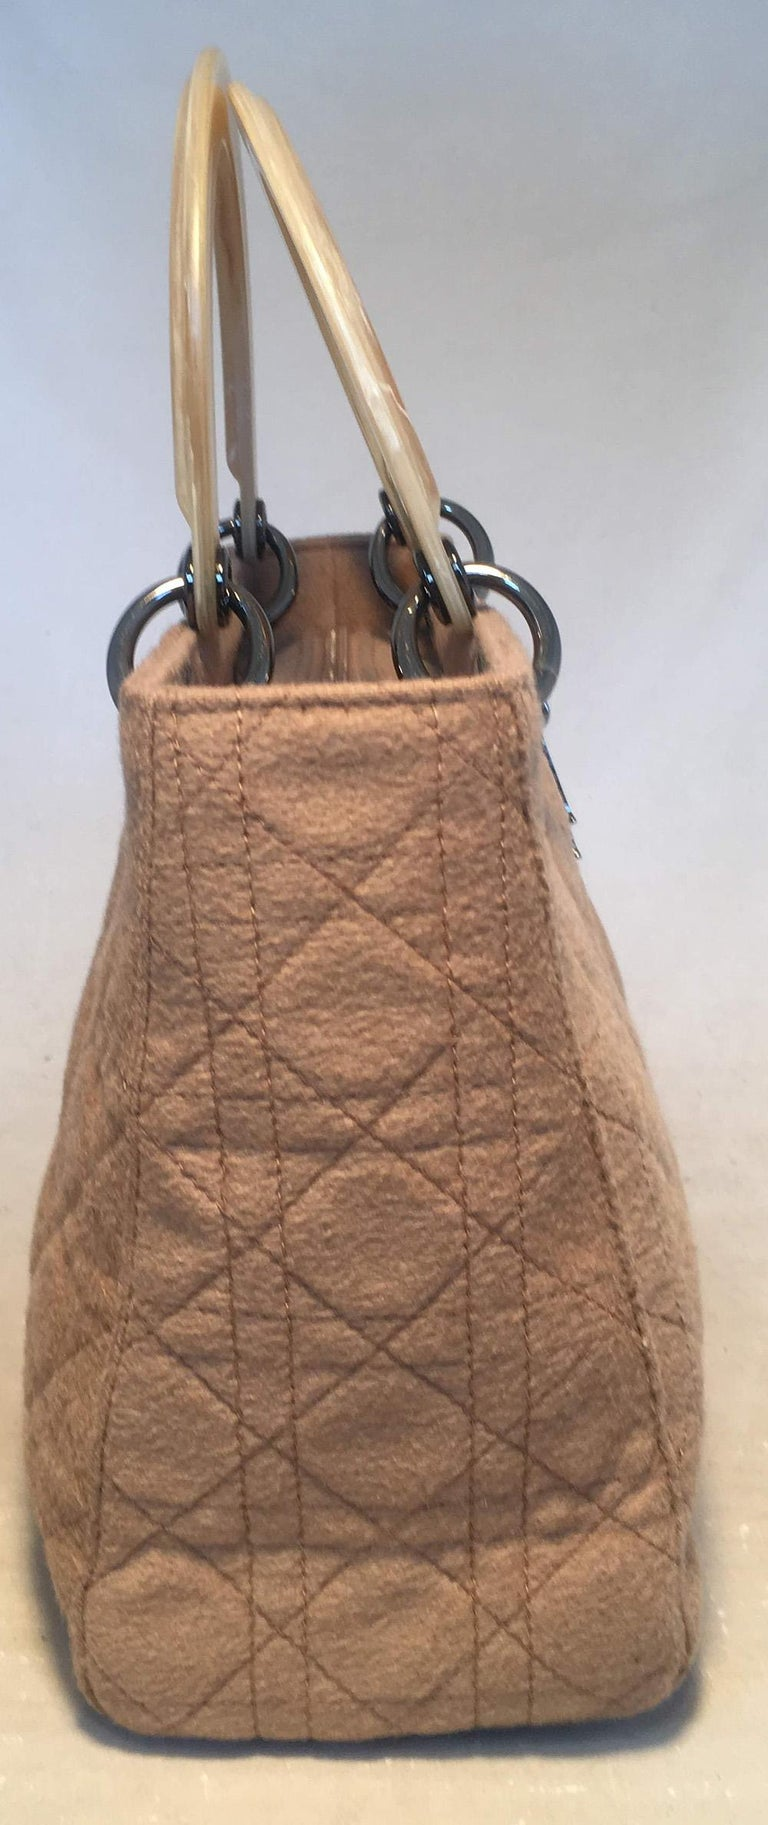 Christian Dior Tan Wool Cannage Quilted Medium Lady Di Bag excellent condition. Tan wool cannage quilted body trimmed with gunmetal hardware and beige brushed resin handles. Top flap snap closure opens to a brown nylon interior that holds one side